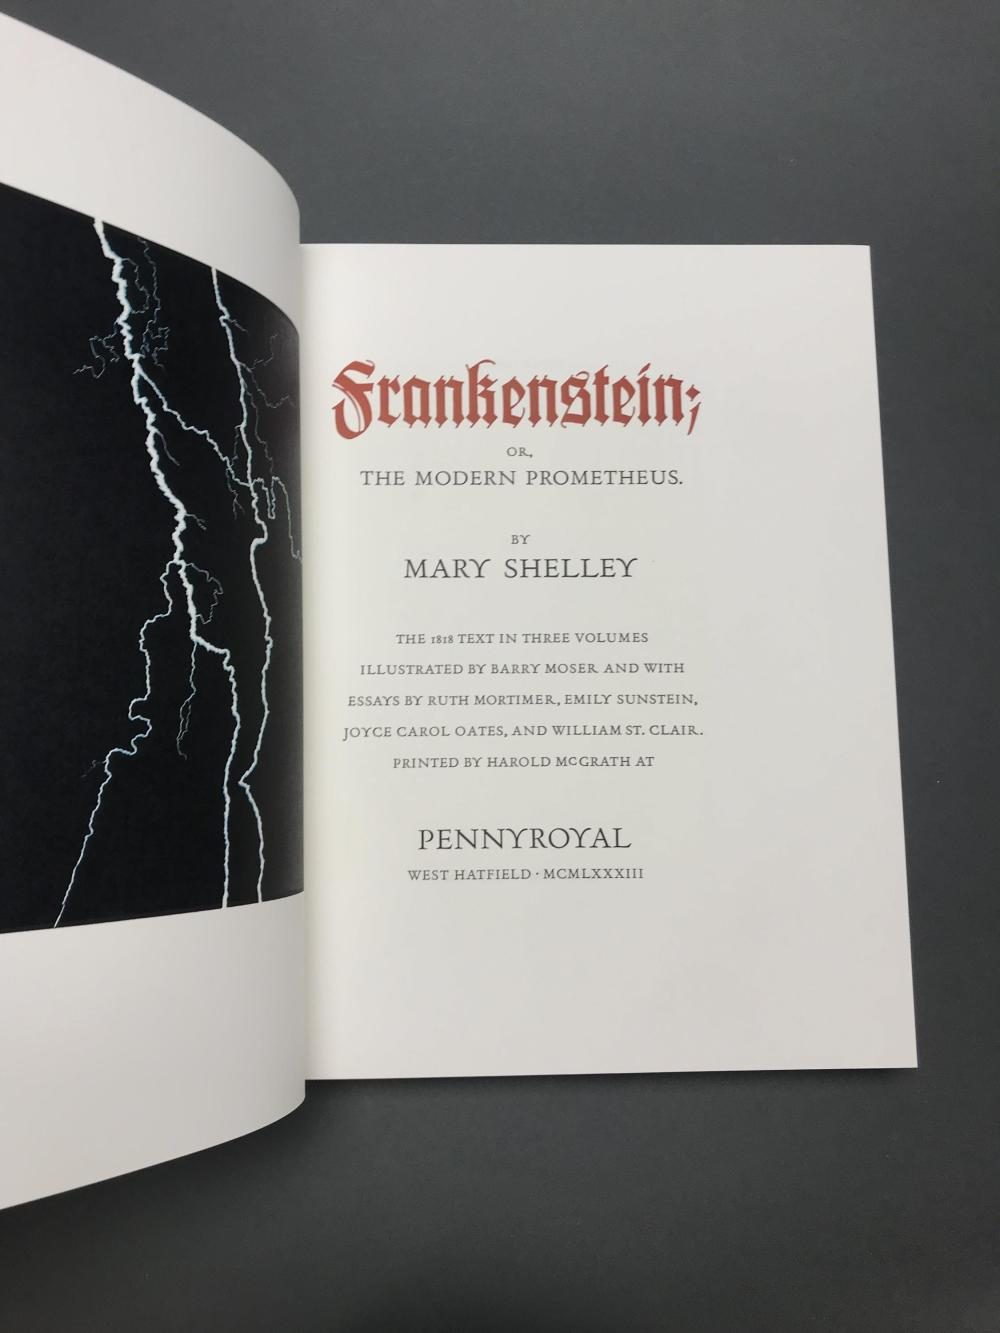 Lot 206: Shelley, [Moser, ill.] Frankenstein. 1983. 24/350.